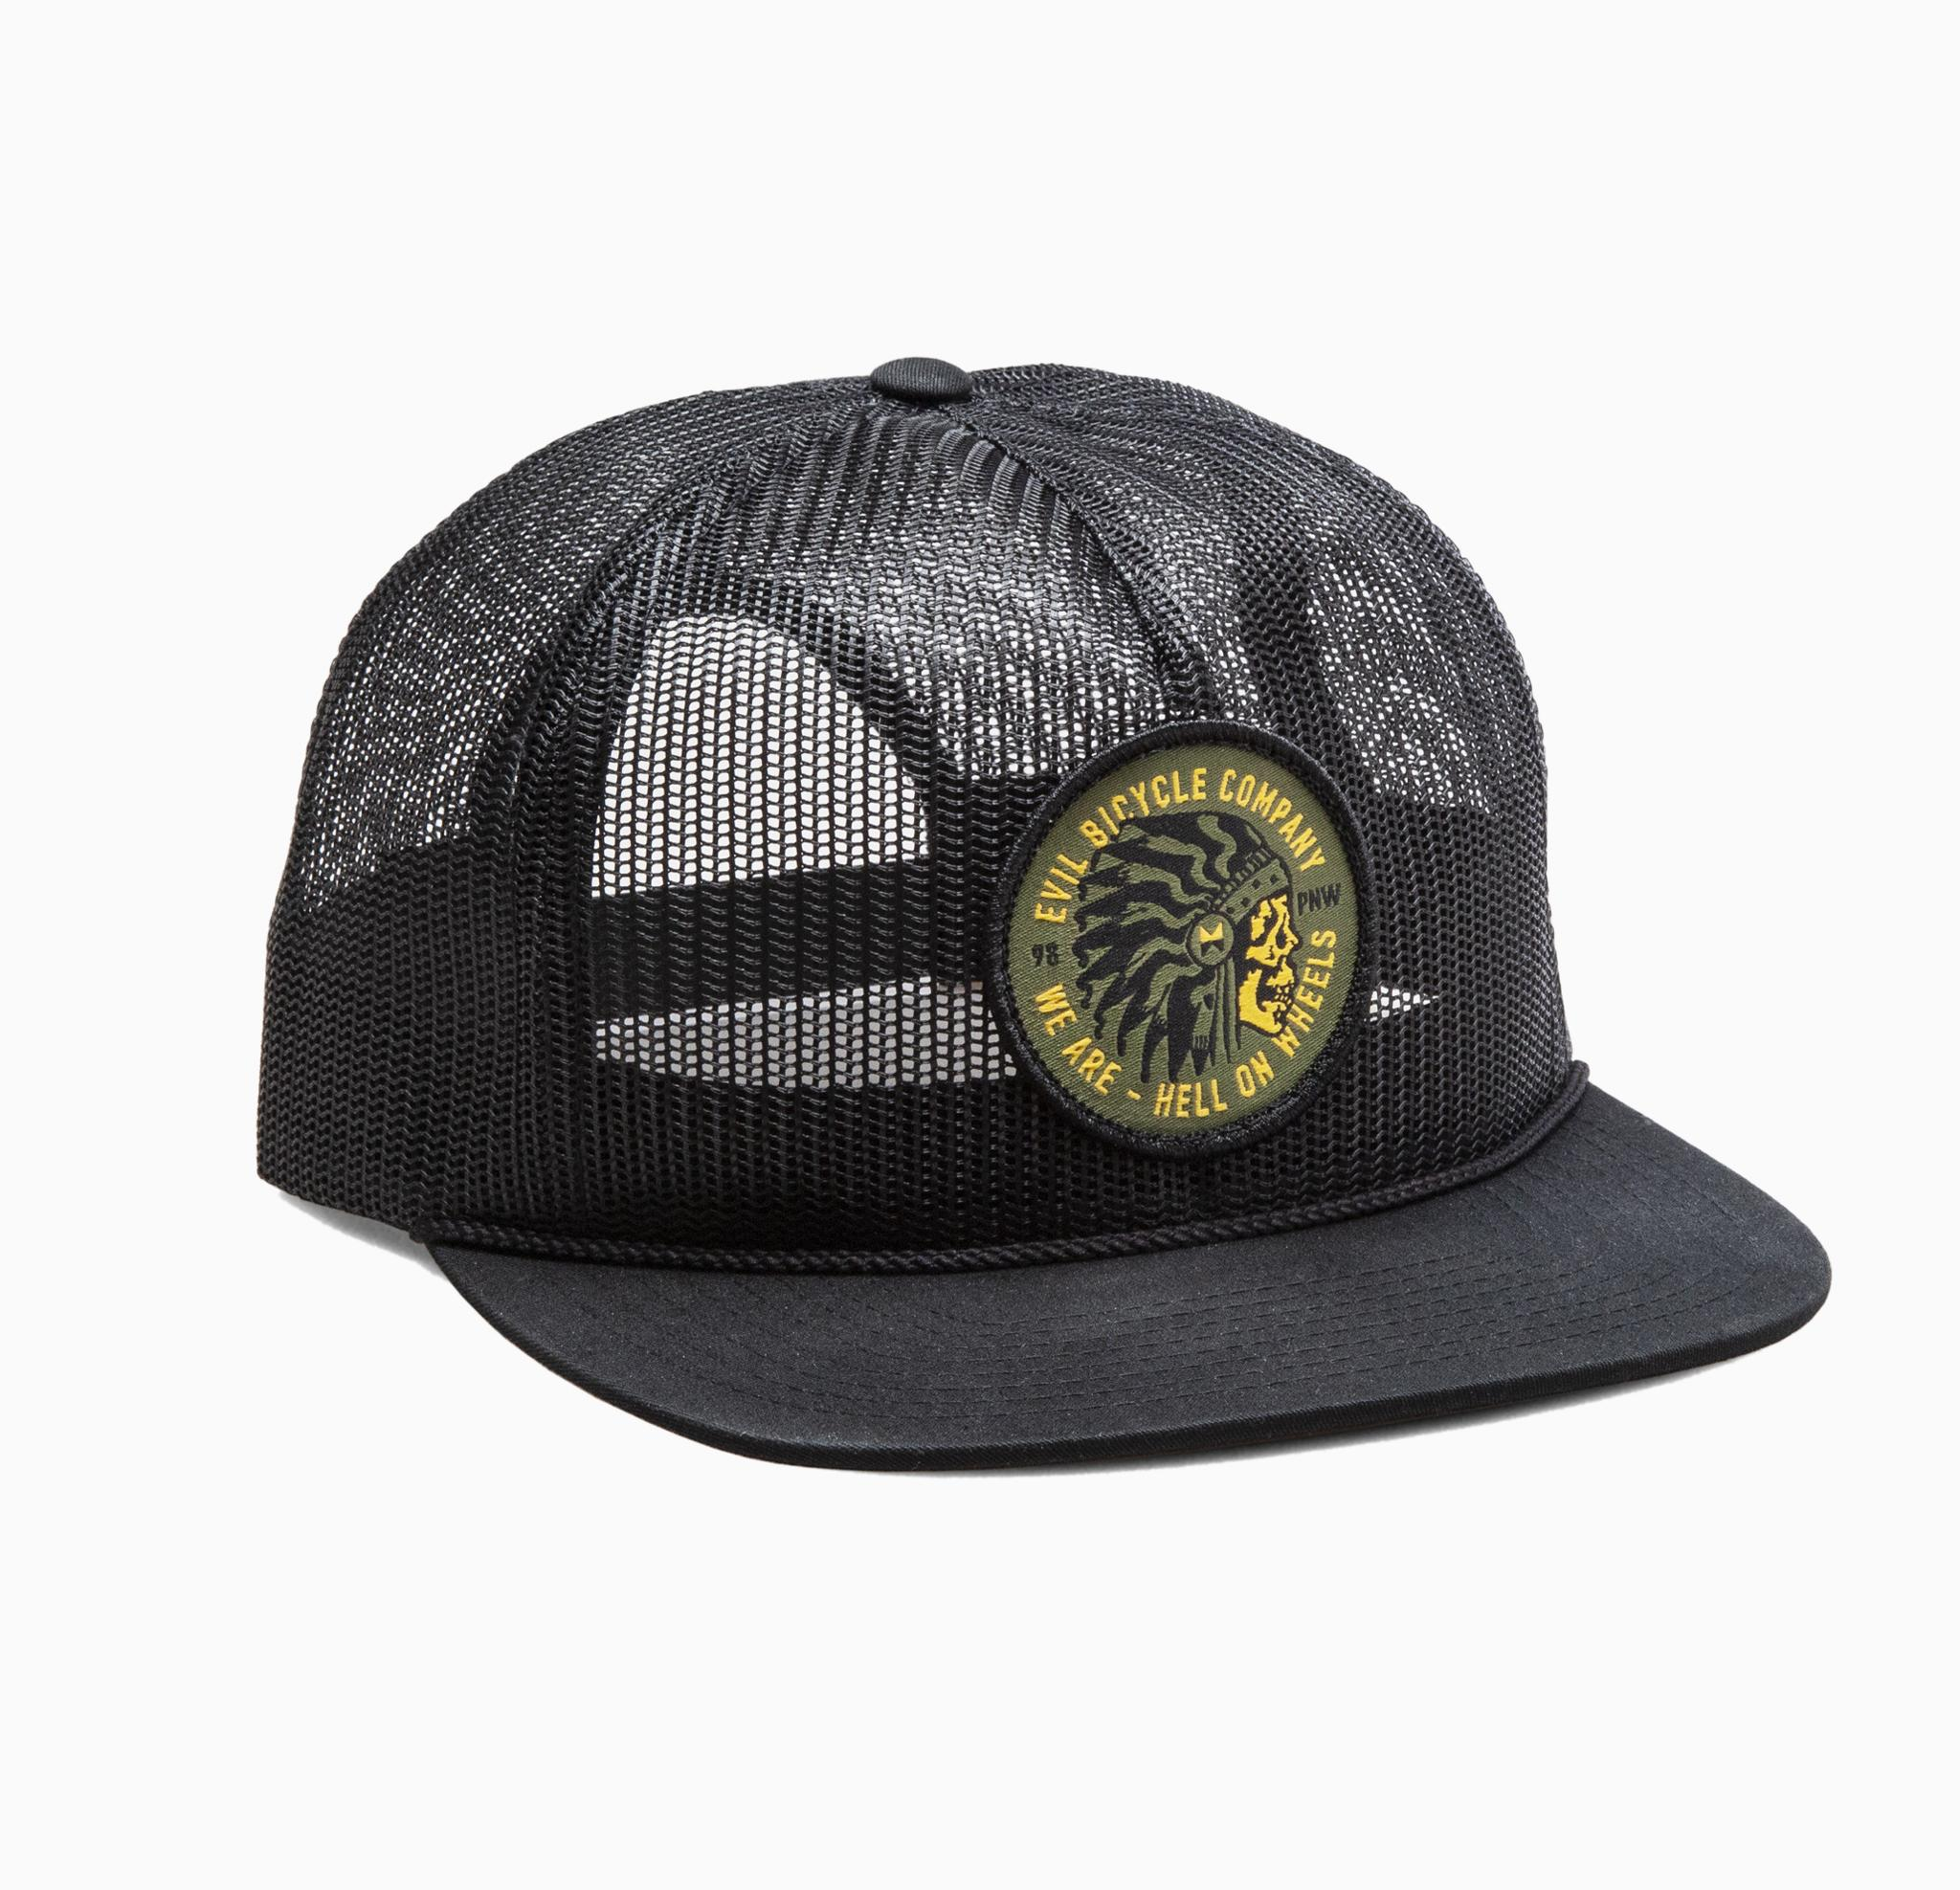 Hell On Wheels Mesh Trucker Snapback Cap